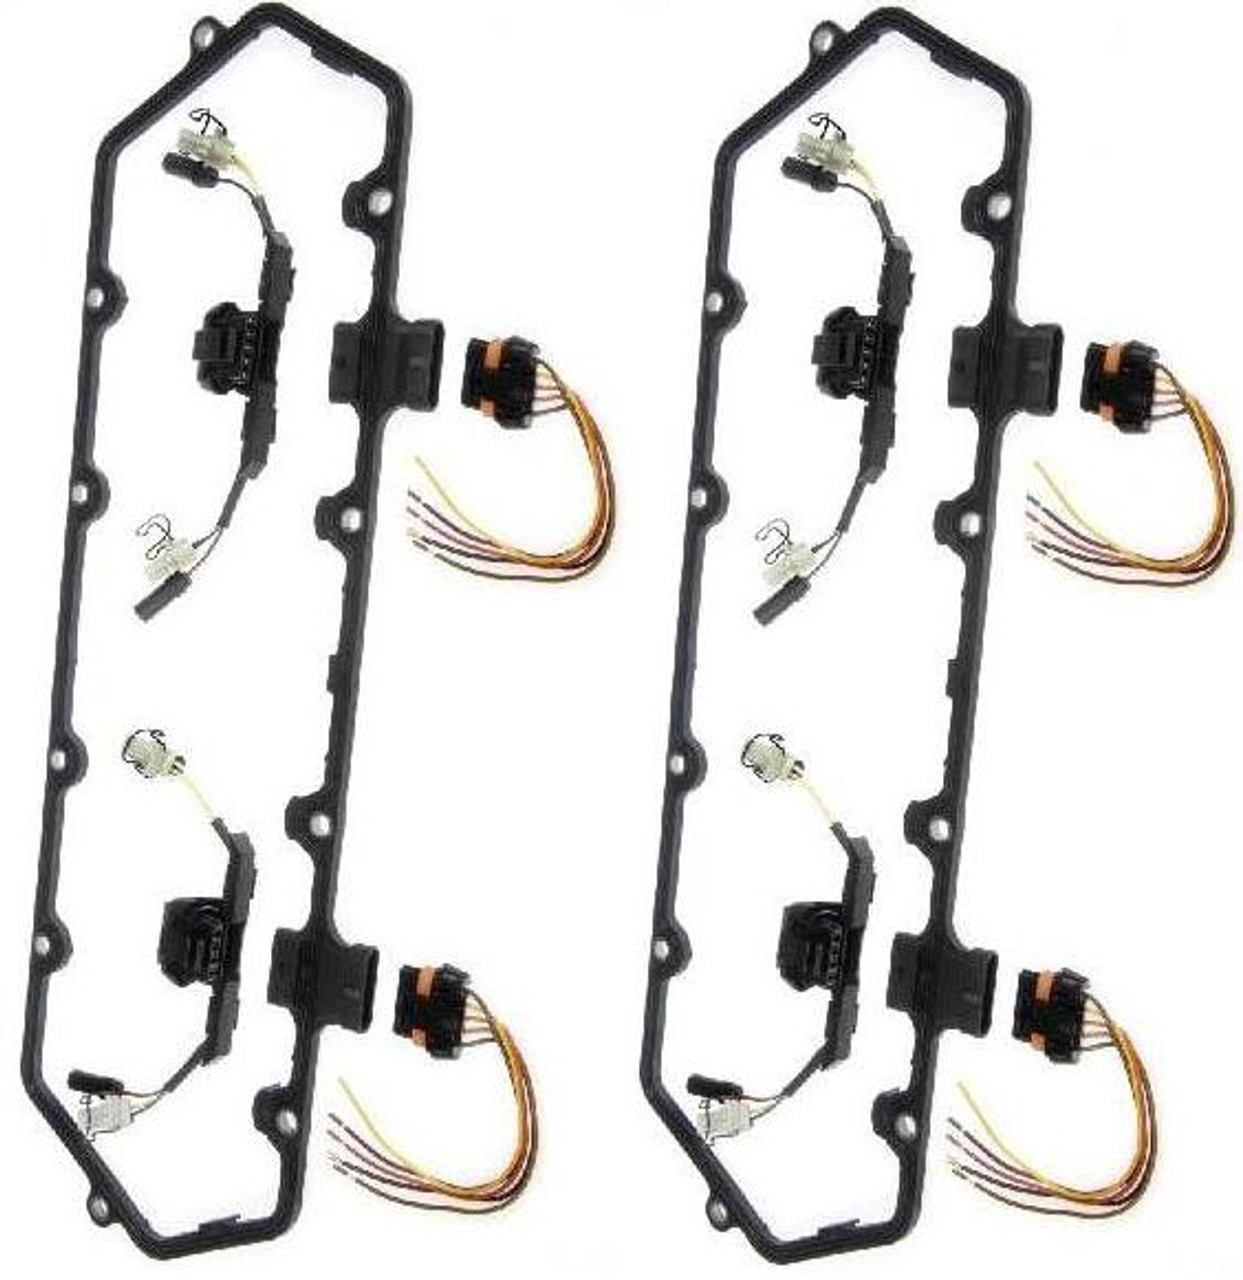 Dorman 94-97 Ford DUAL Valve Cover Gasket with Fuel Injector Wiring on radio harness, battery harness, pet harness, dog harness, electrical harness, cable harness, swing harness, fall protection harness, engine harness, amp bypass harness, safety harness, obd0 to obd1 conversion harness, maxi-seal harness, suspension harness, alpine stereo harness, nakamichi harness, oxygen sensor extension harness, pony harness,